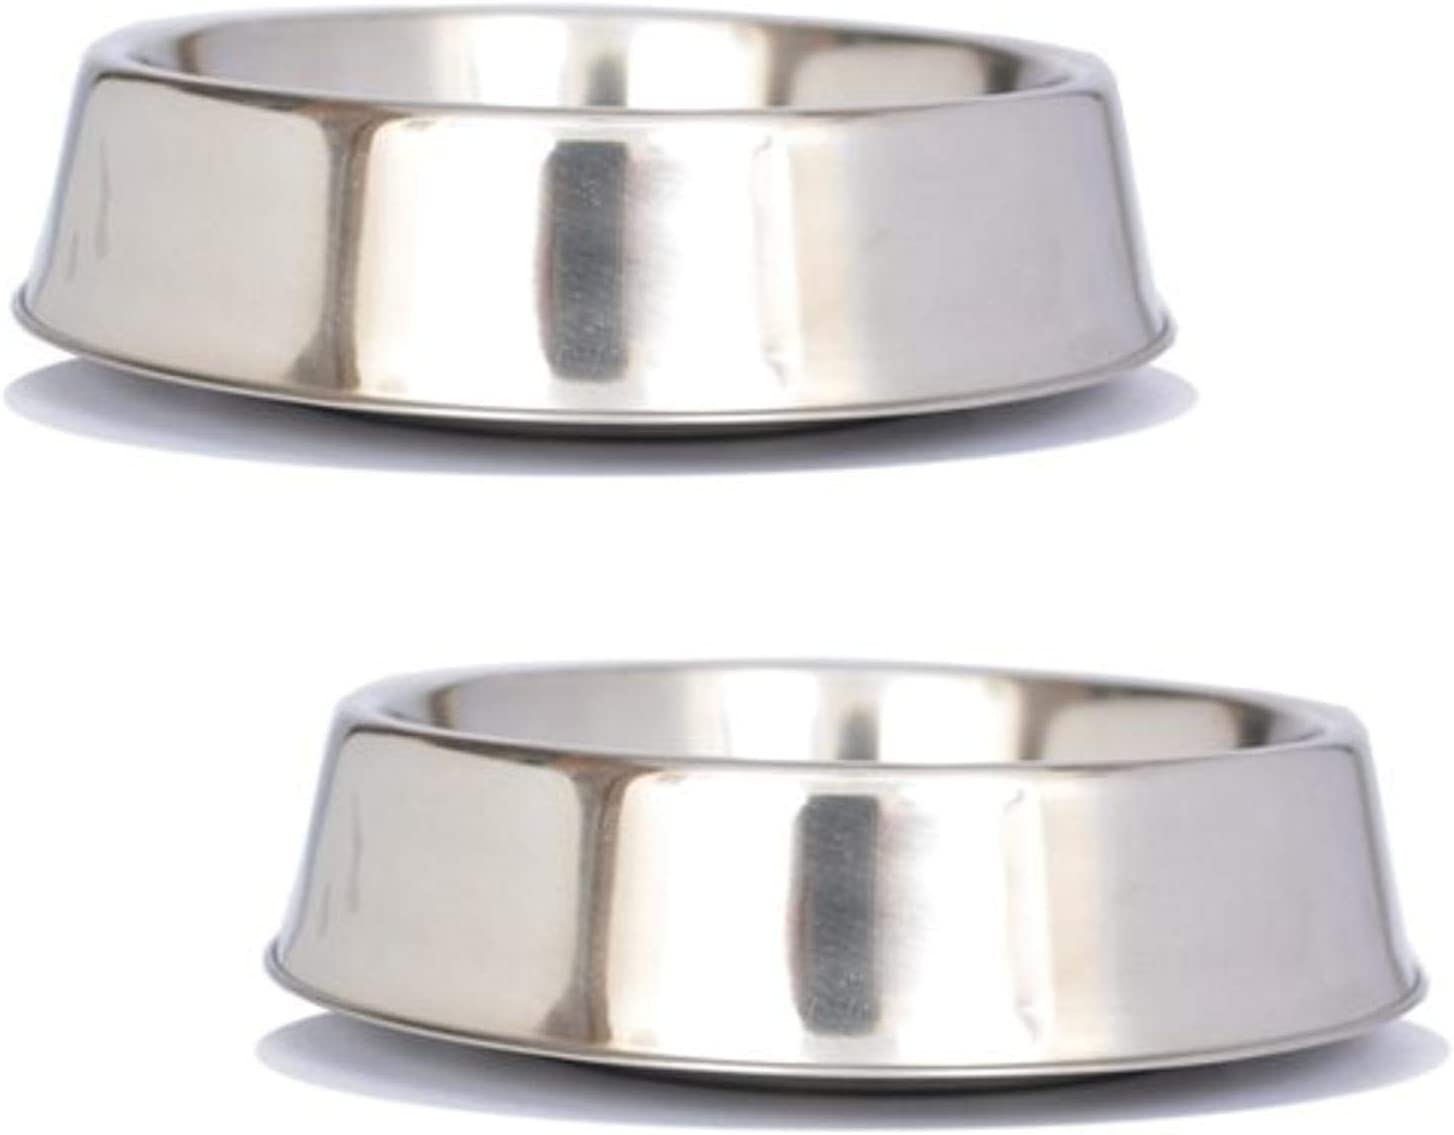 Iconic Pet 2 Cup Anti Ant Stainless Steel Non Skid Pet Bowl for Dog Or Cat (2 Pack), 16 oz